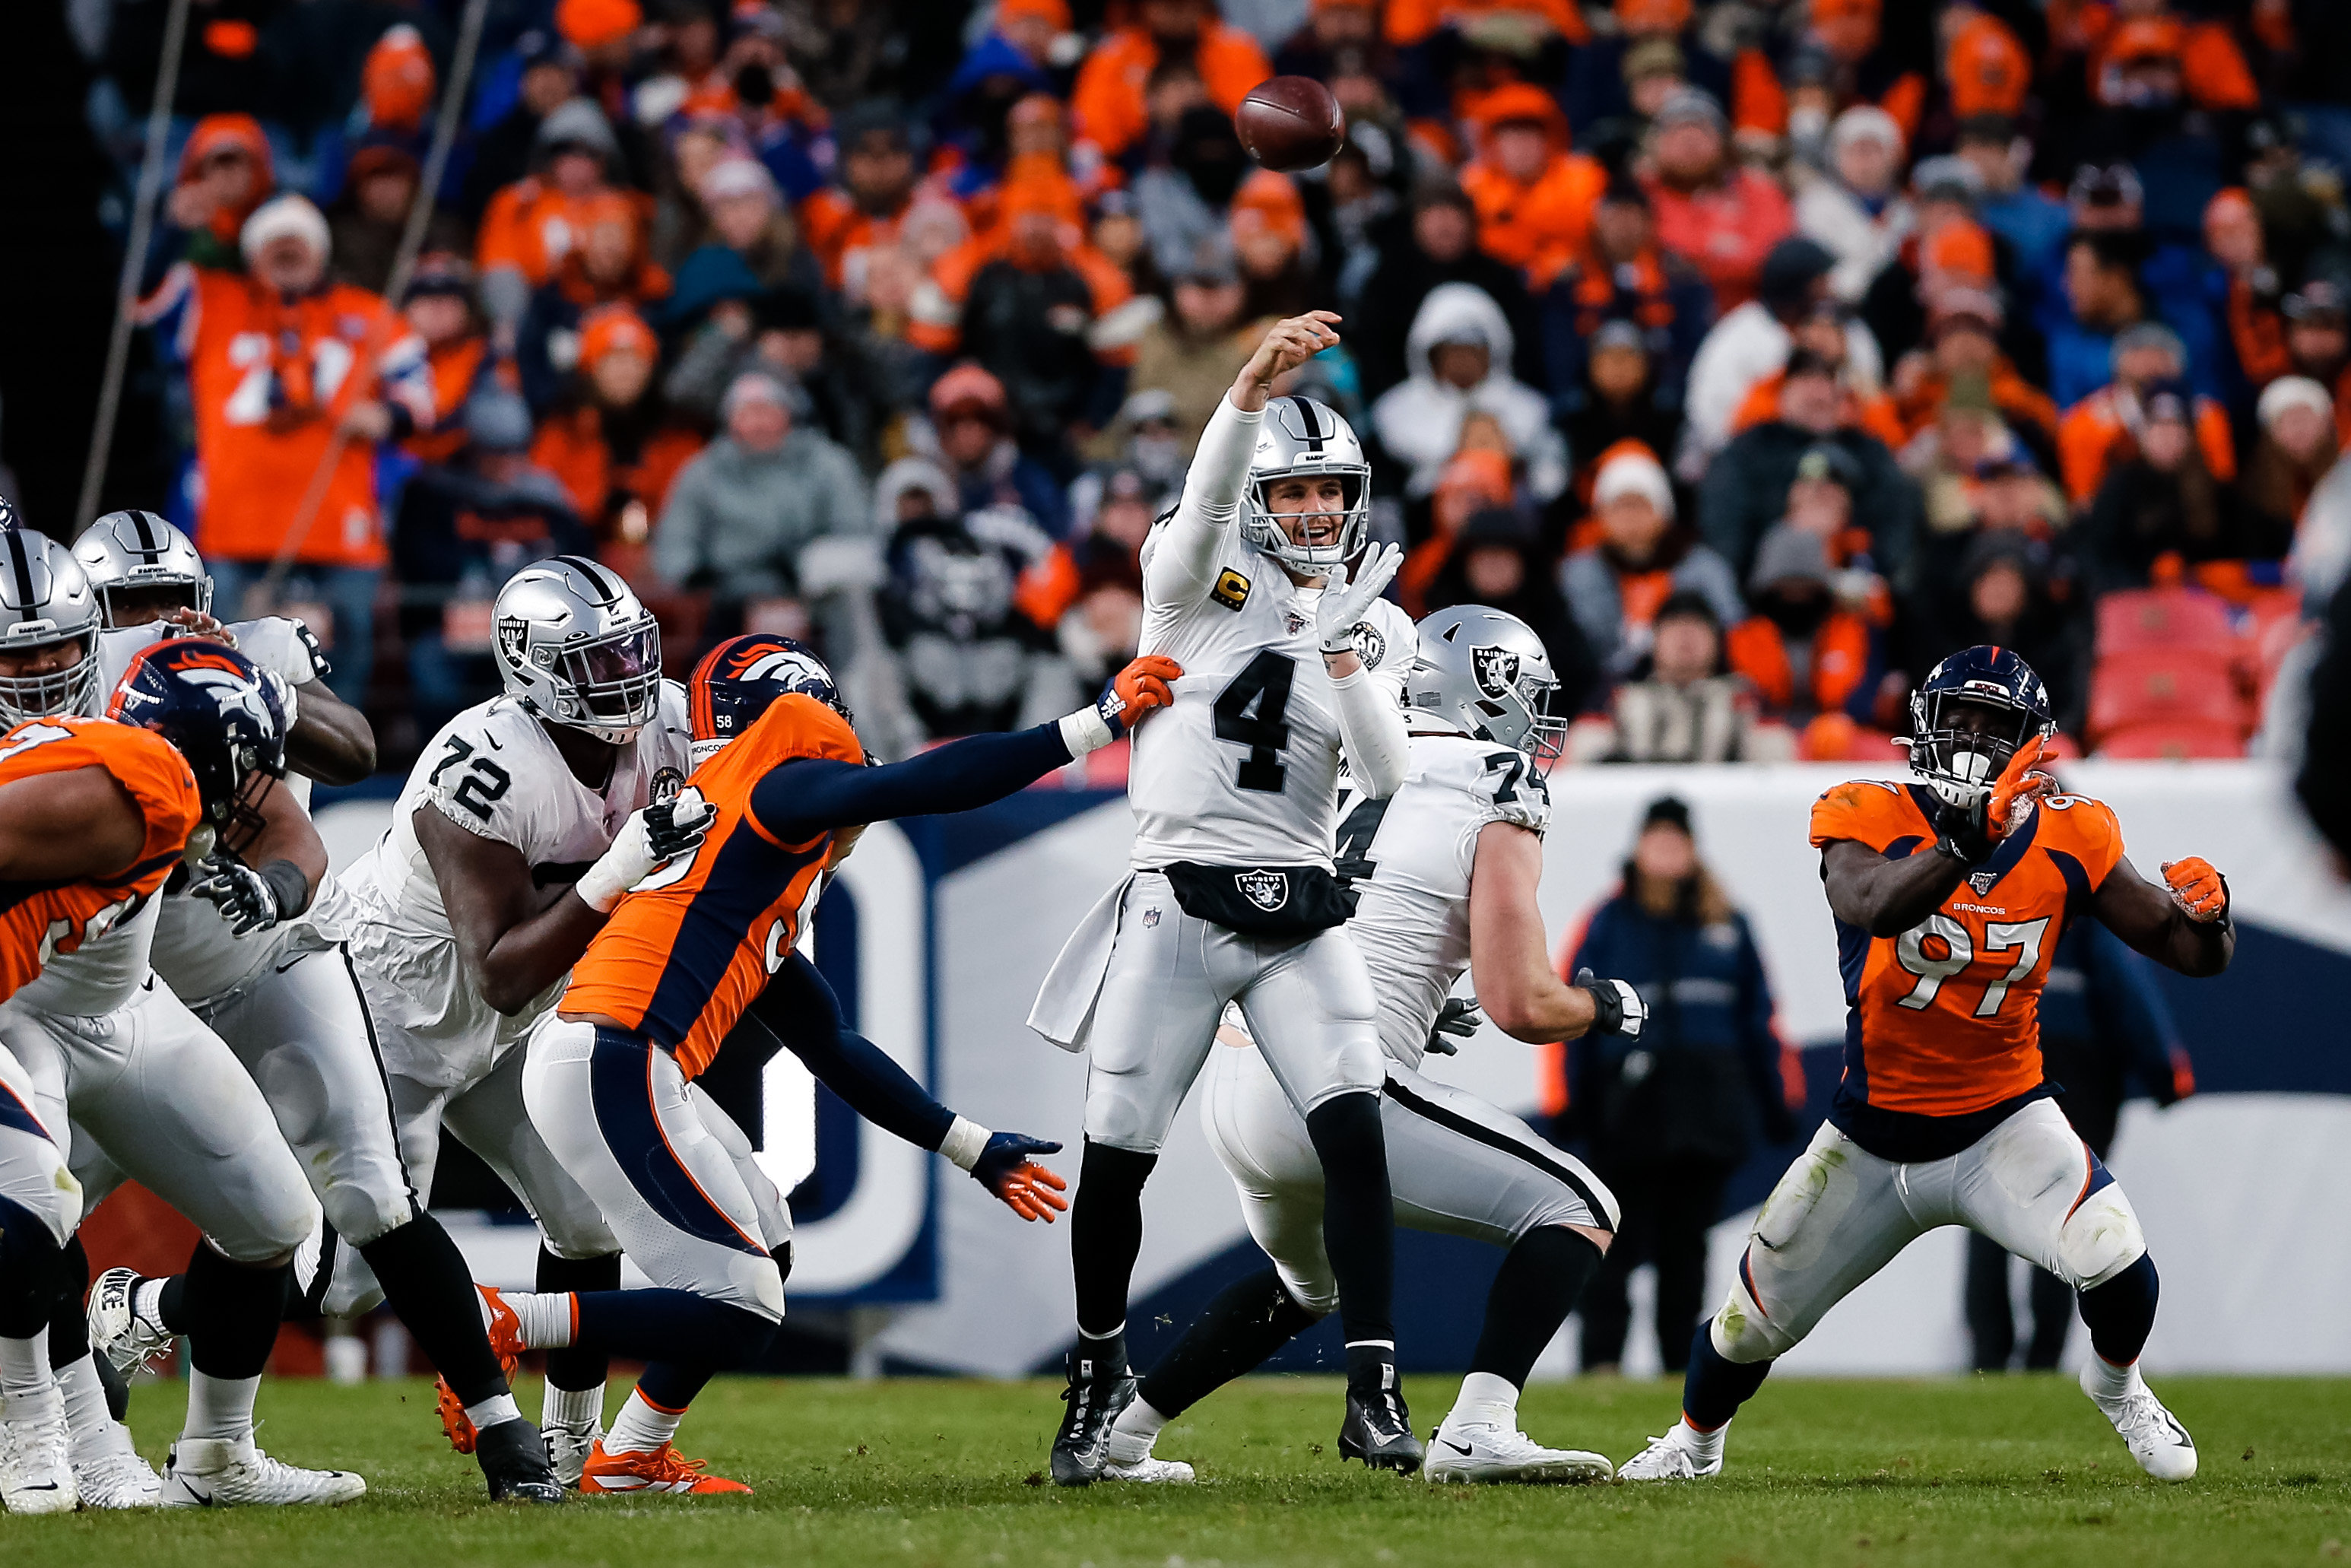 Could Carr Drive the Redskins?